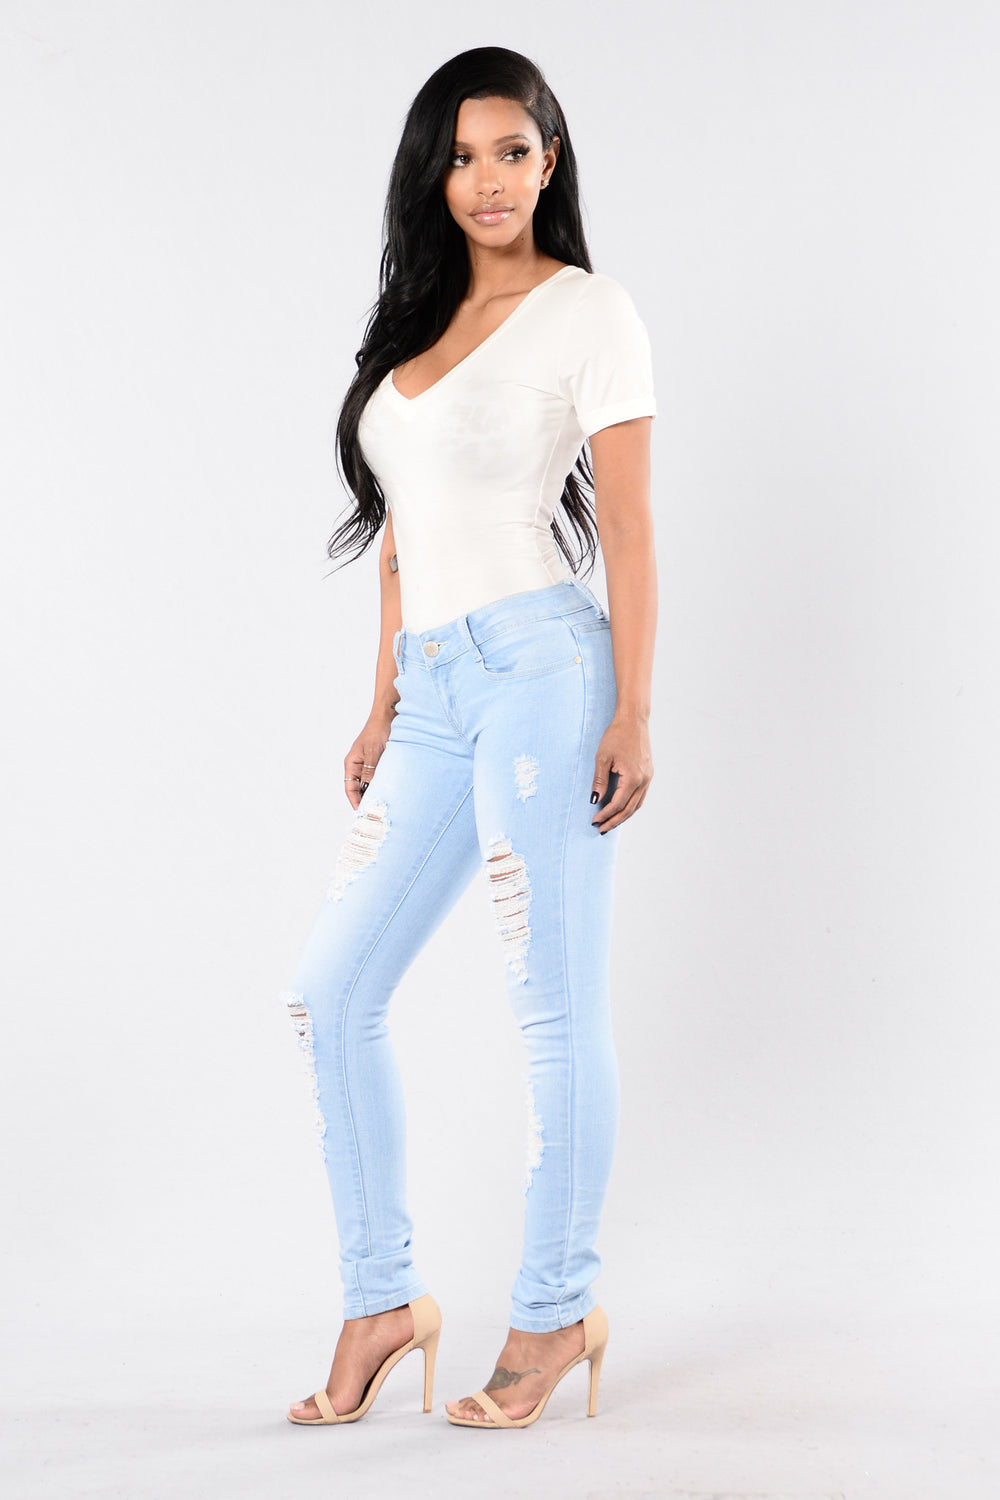 My Faves Jeans - Light